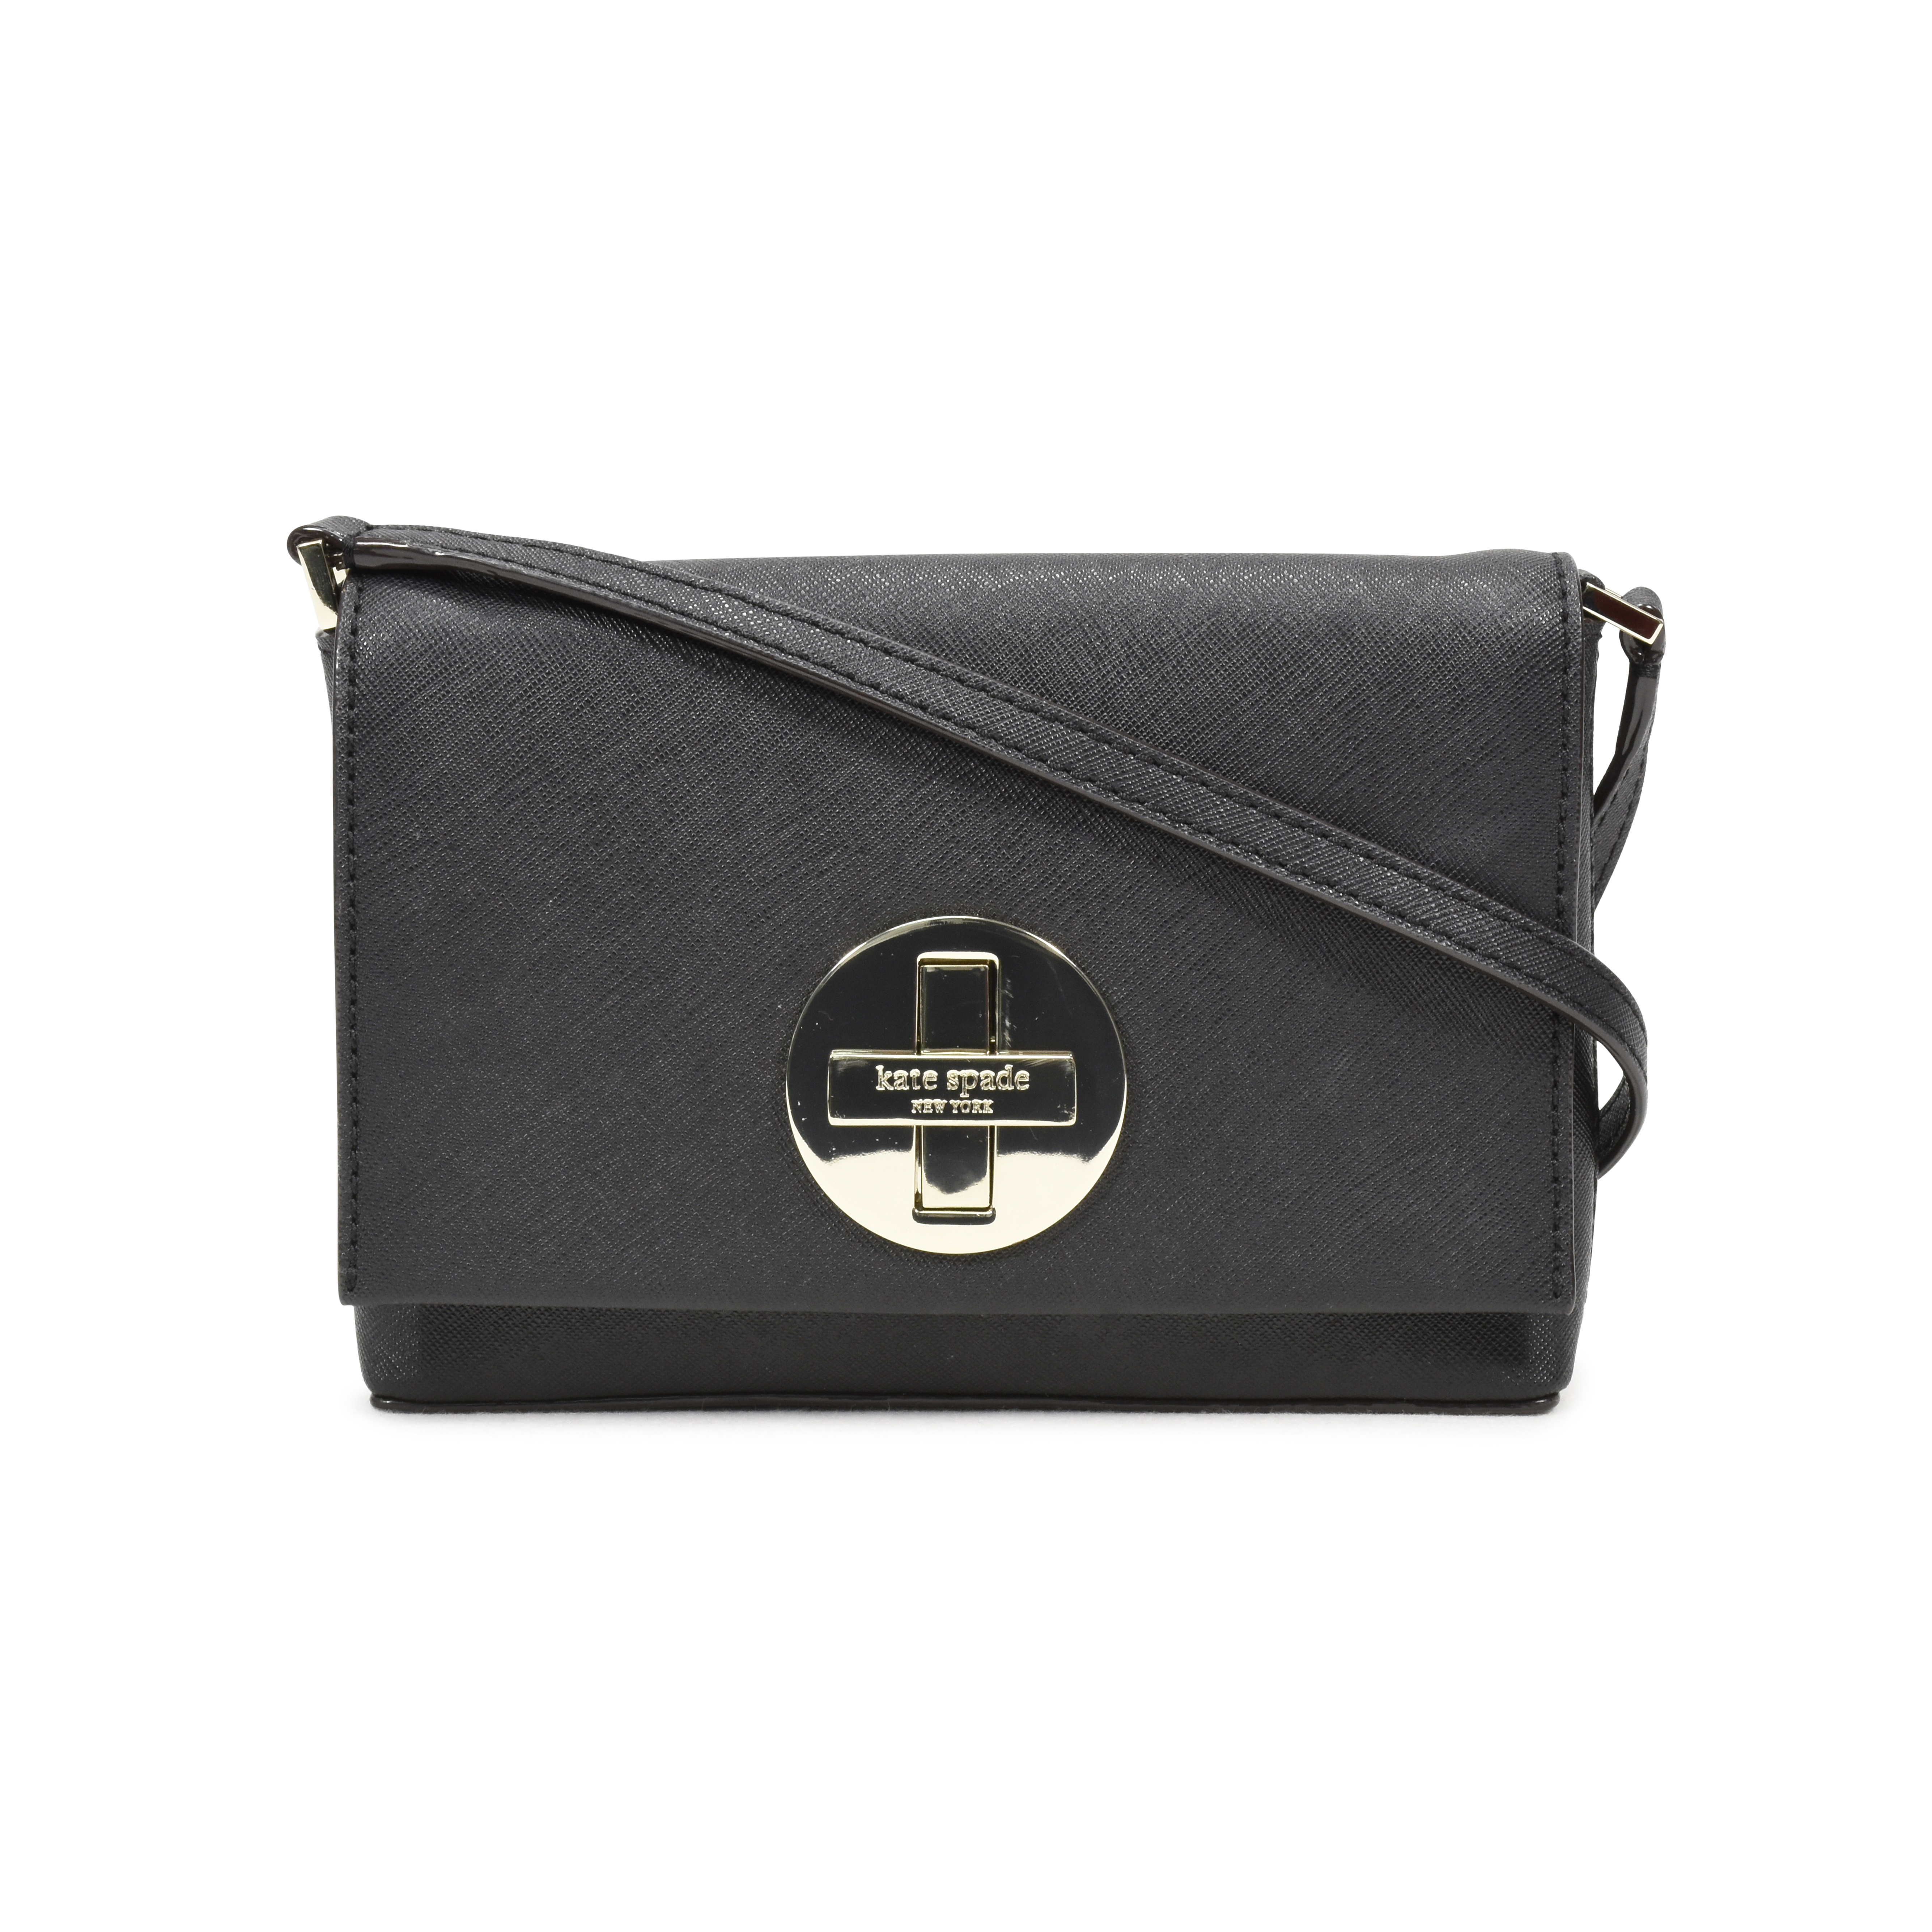 Authentic Pre Owned Kate Spade Sally Newbury Lane Crossbody Bag  (PSS-366-00005)   THE FIFTH COLLECTION® c28f7f173a